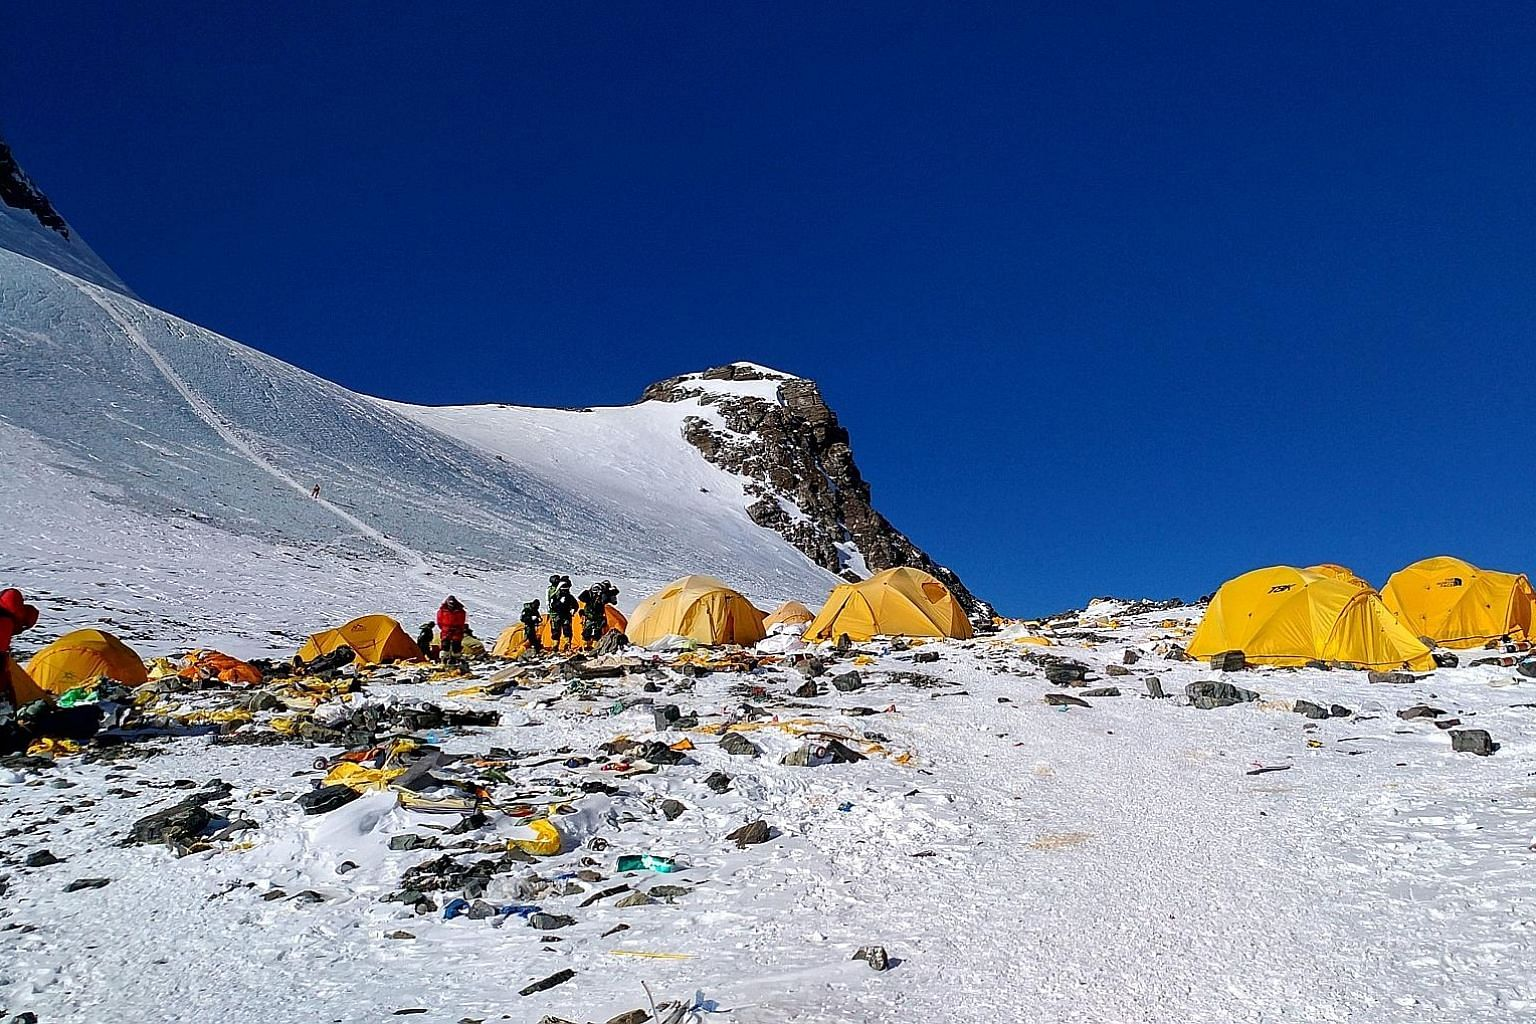 Discarded climbing equipment and rubbish scattered around Camp 4 of Mount Everest, in a photo taken last month. With the number of commercial climbers soaring, the waste problem has only worsened.